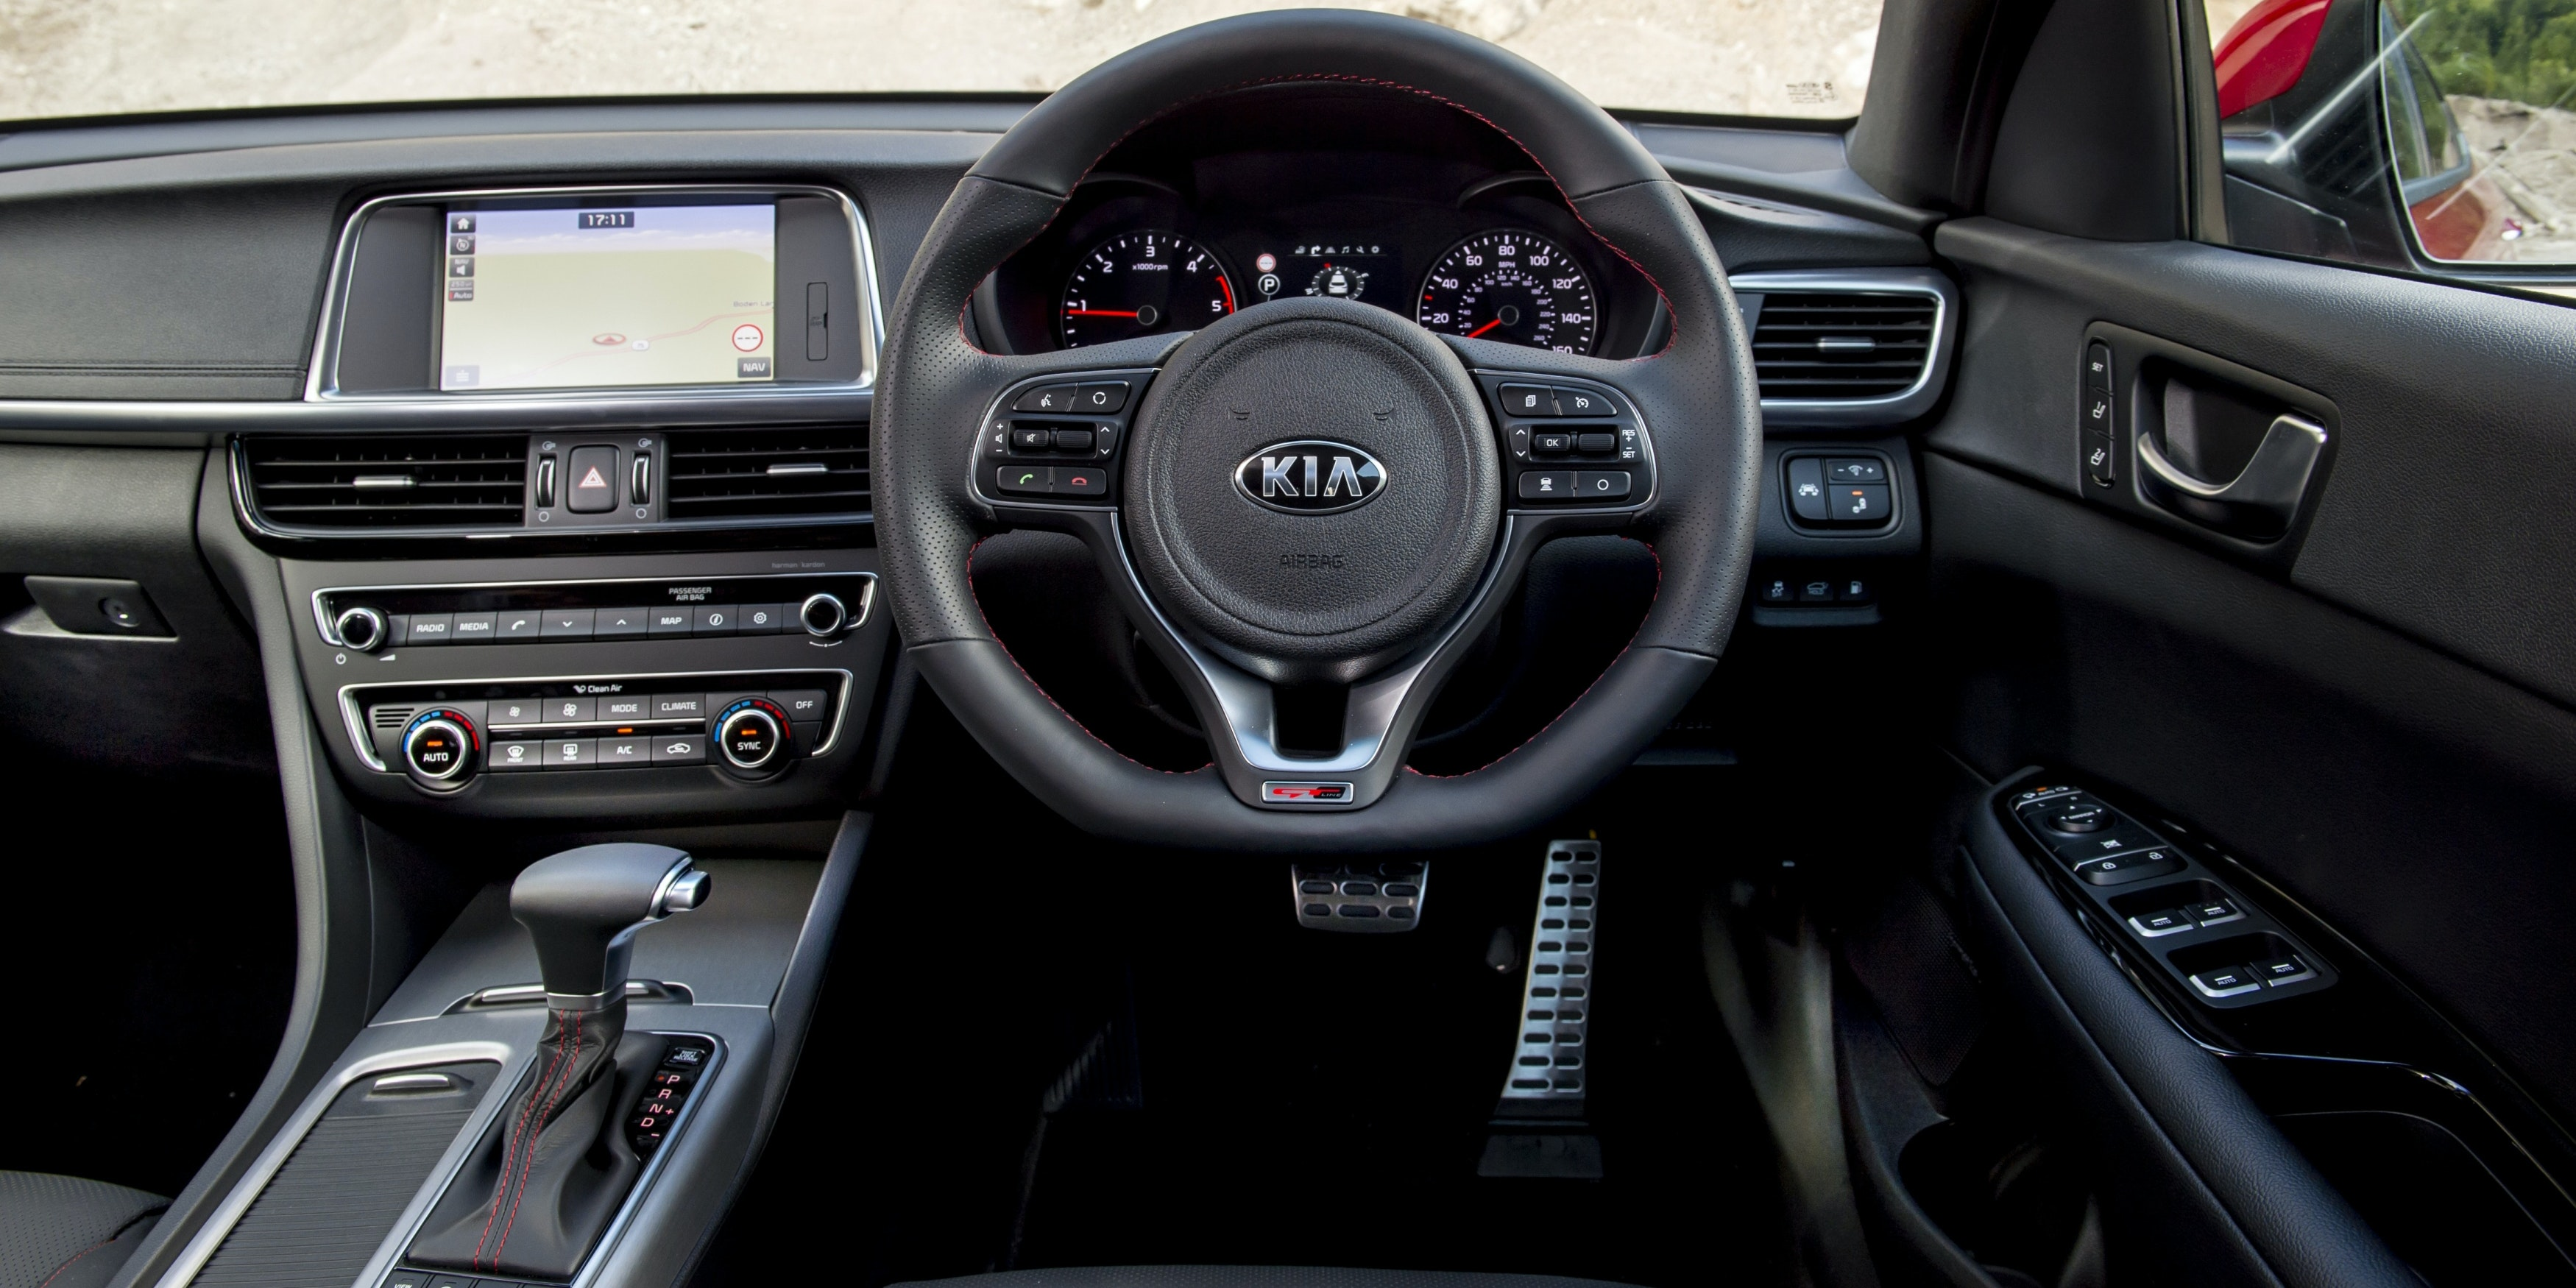 Interior quality is good for a Kia, but not a match for the VW Passat's